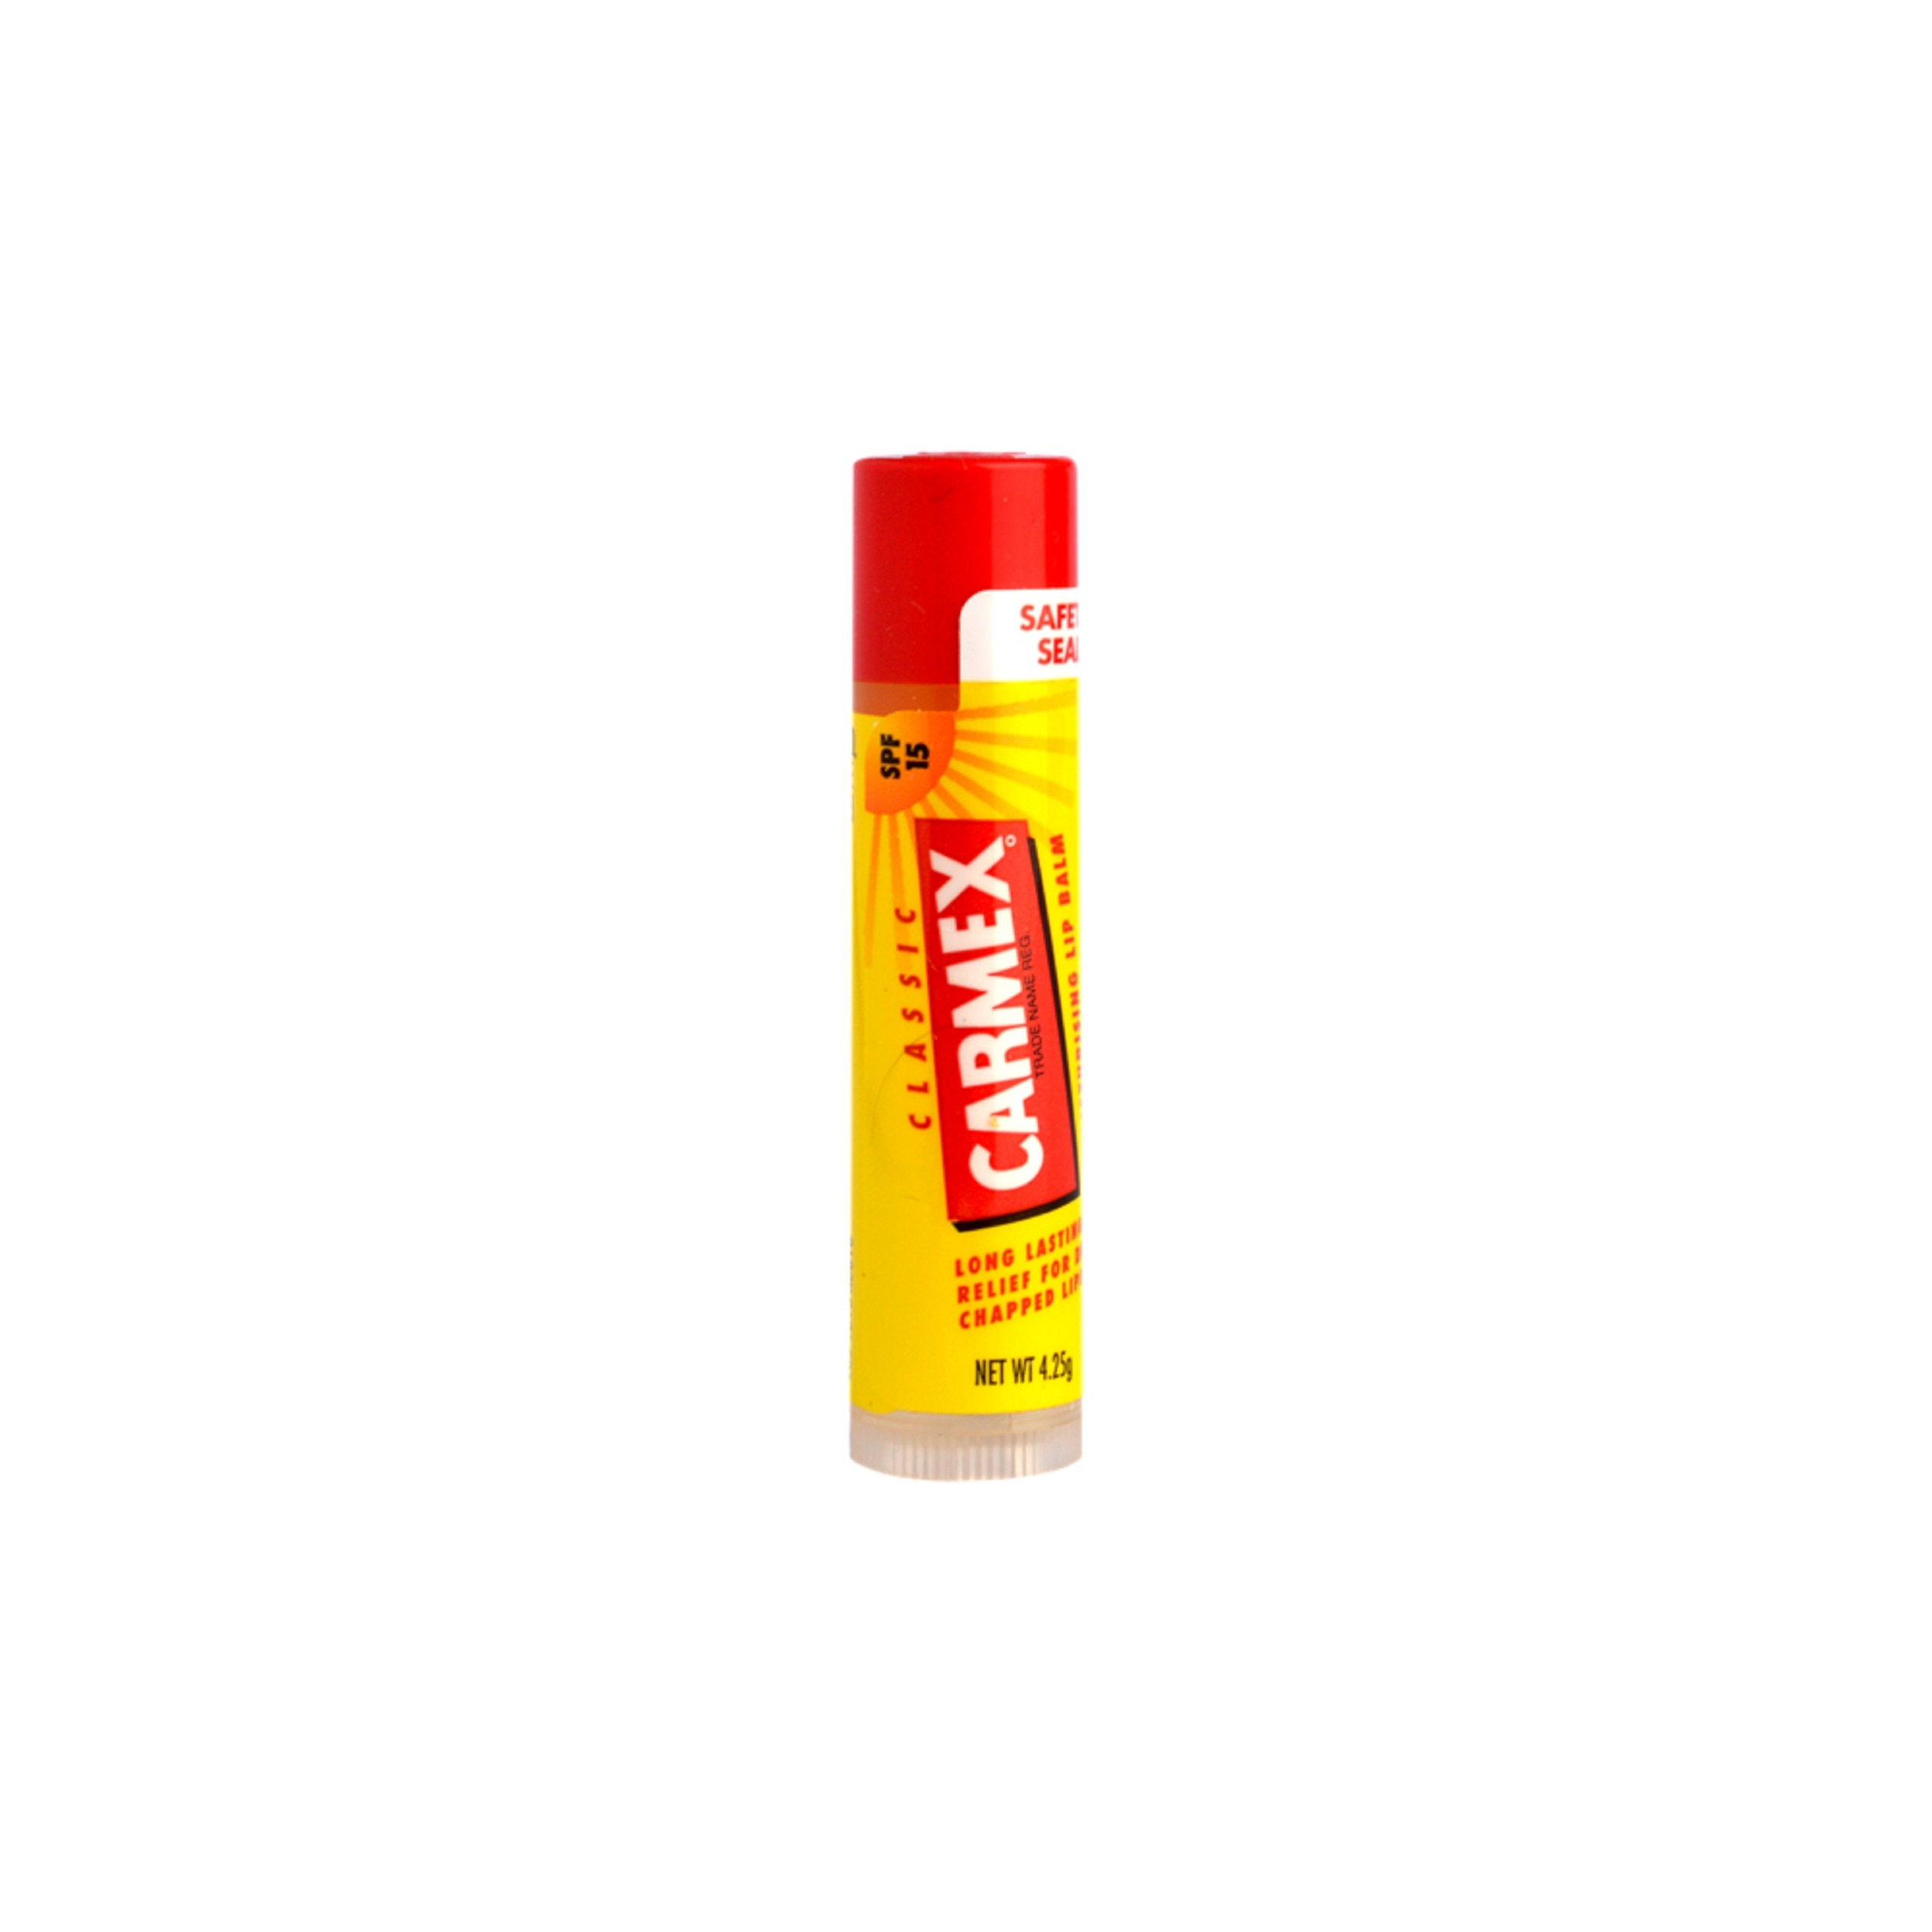 CARMEXOriginal Lip Balm Stick SPF15 4.25g,LipbalmFree (1) Watsons Dermaction Plus Antiacne St20x2 for every purchase of Skin Care products